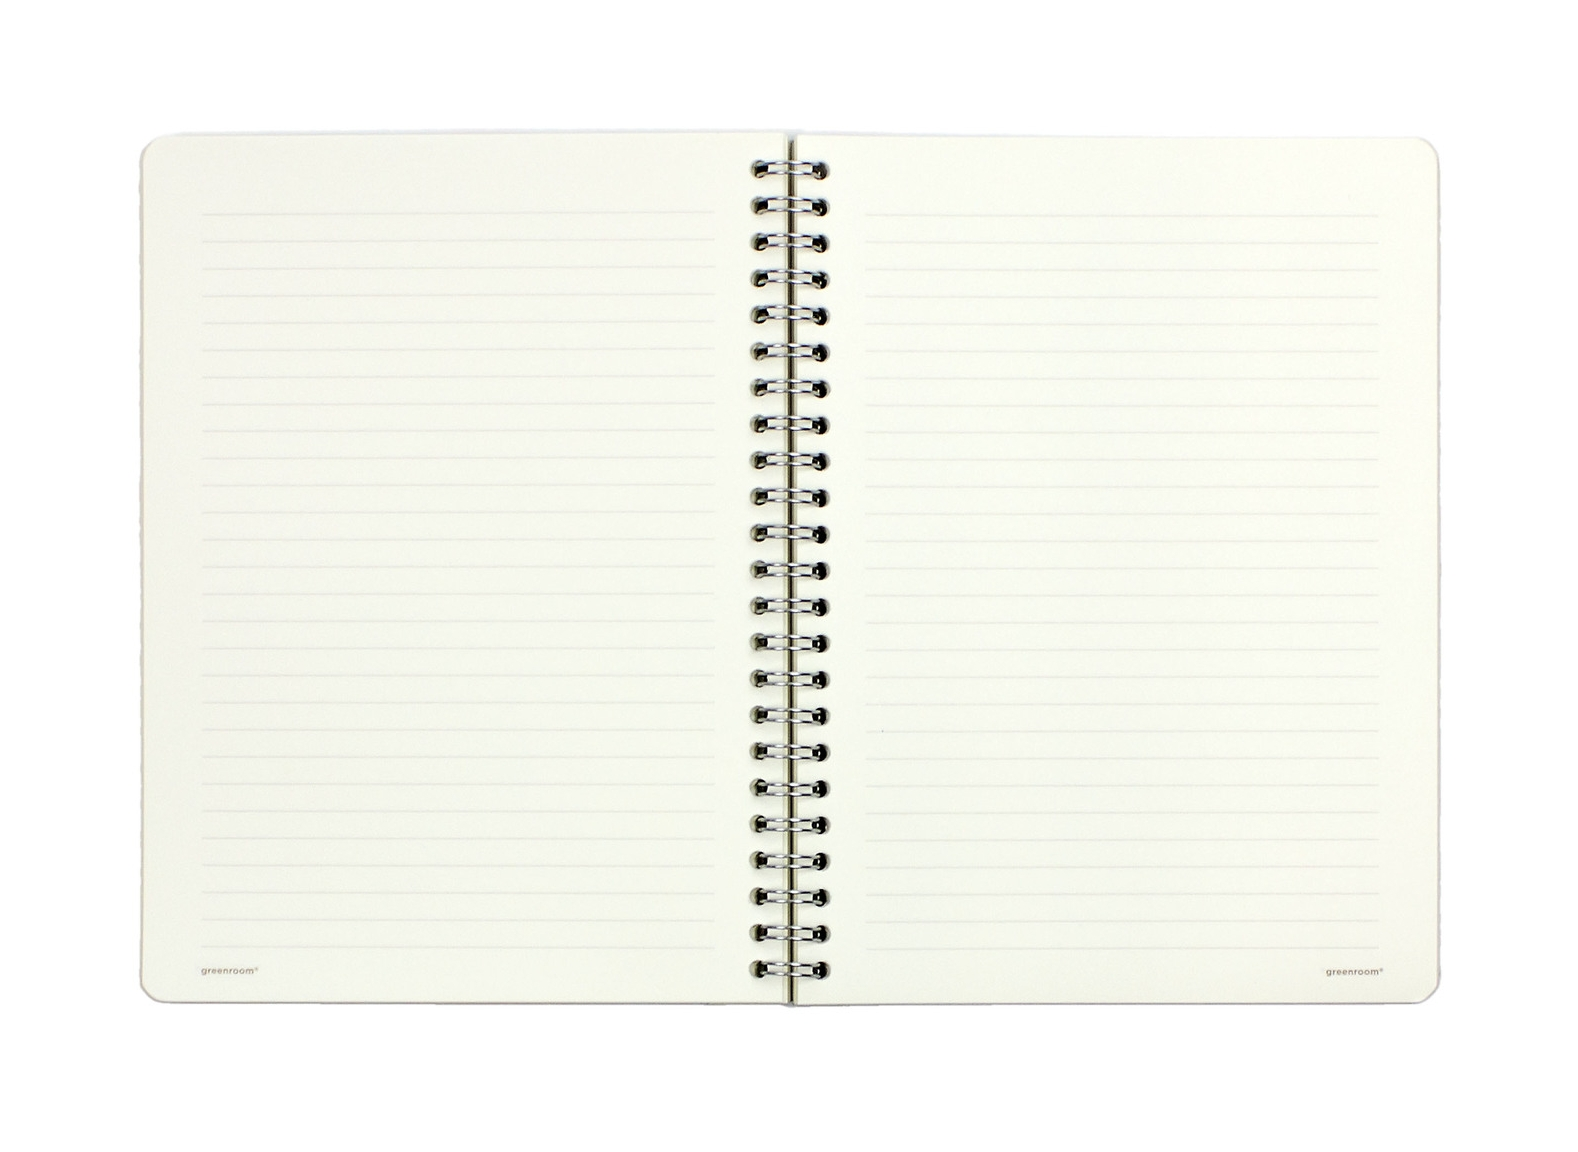 Fashion Notebook // Greenroom, available at Target.